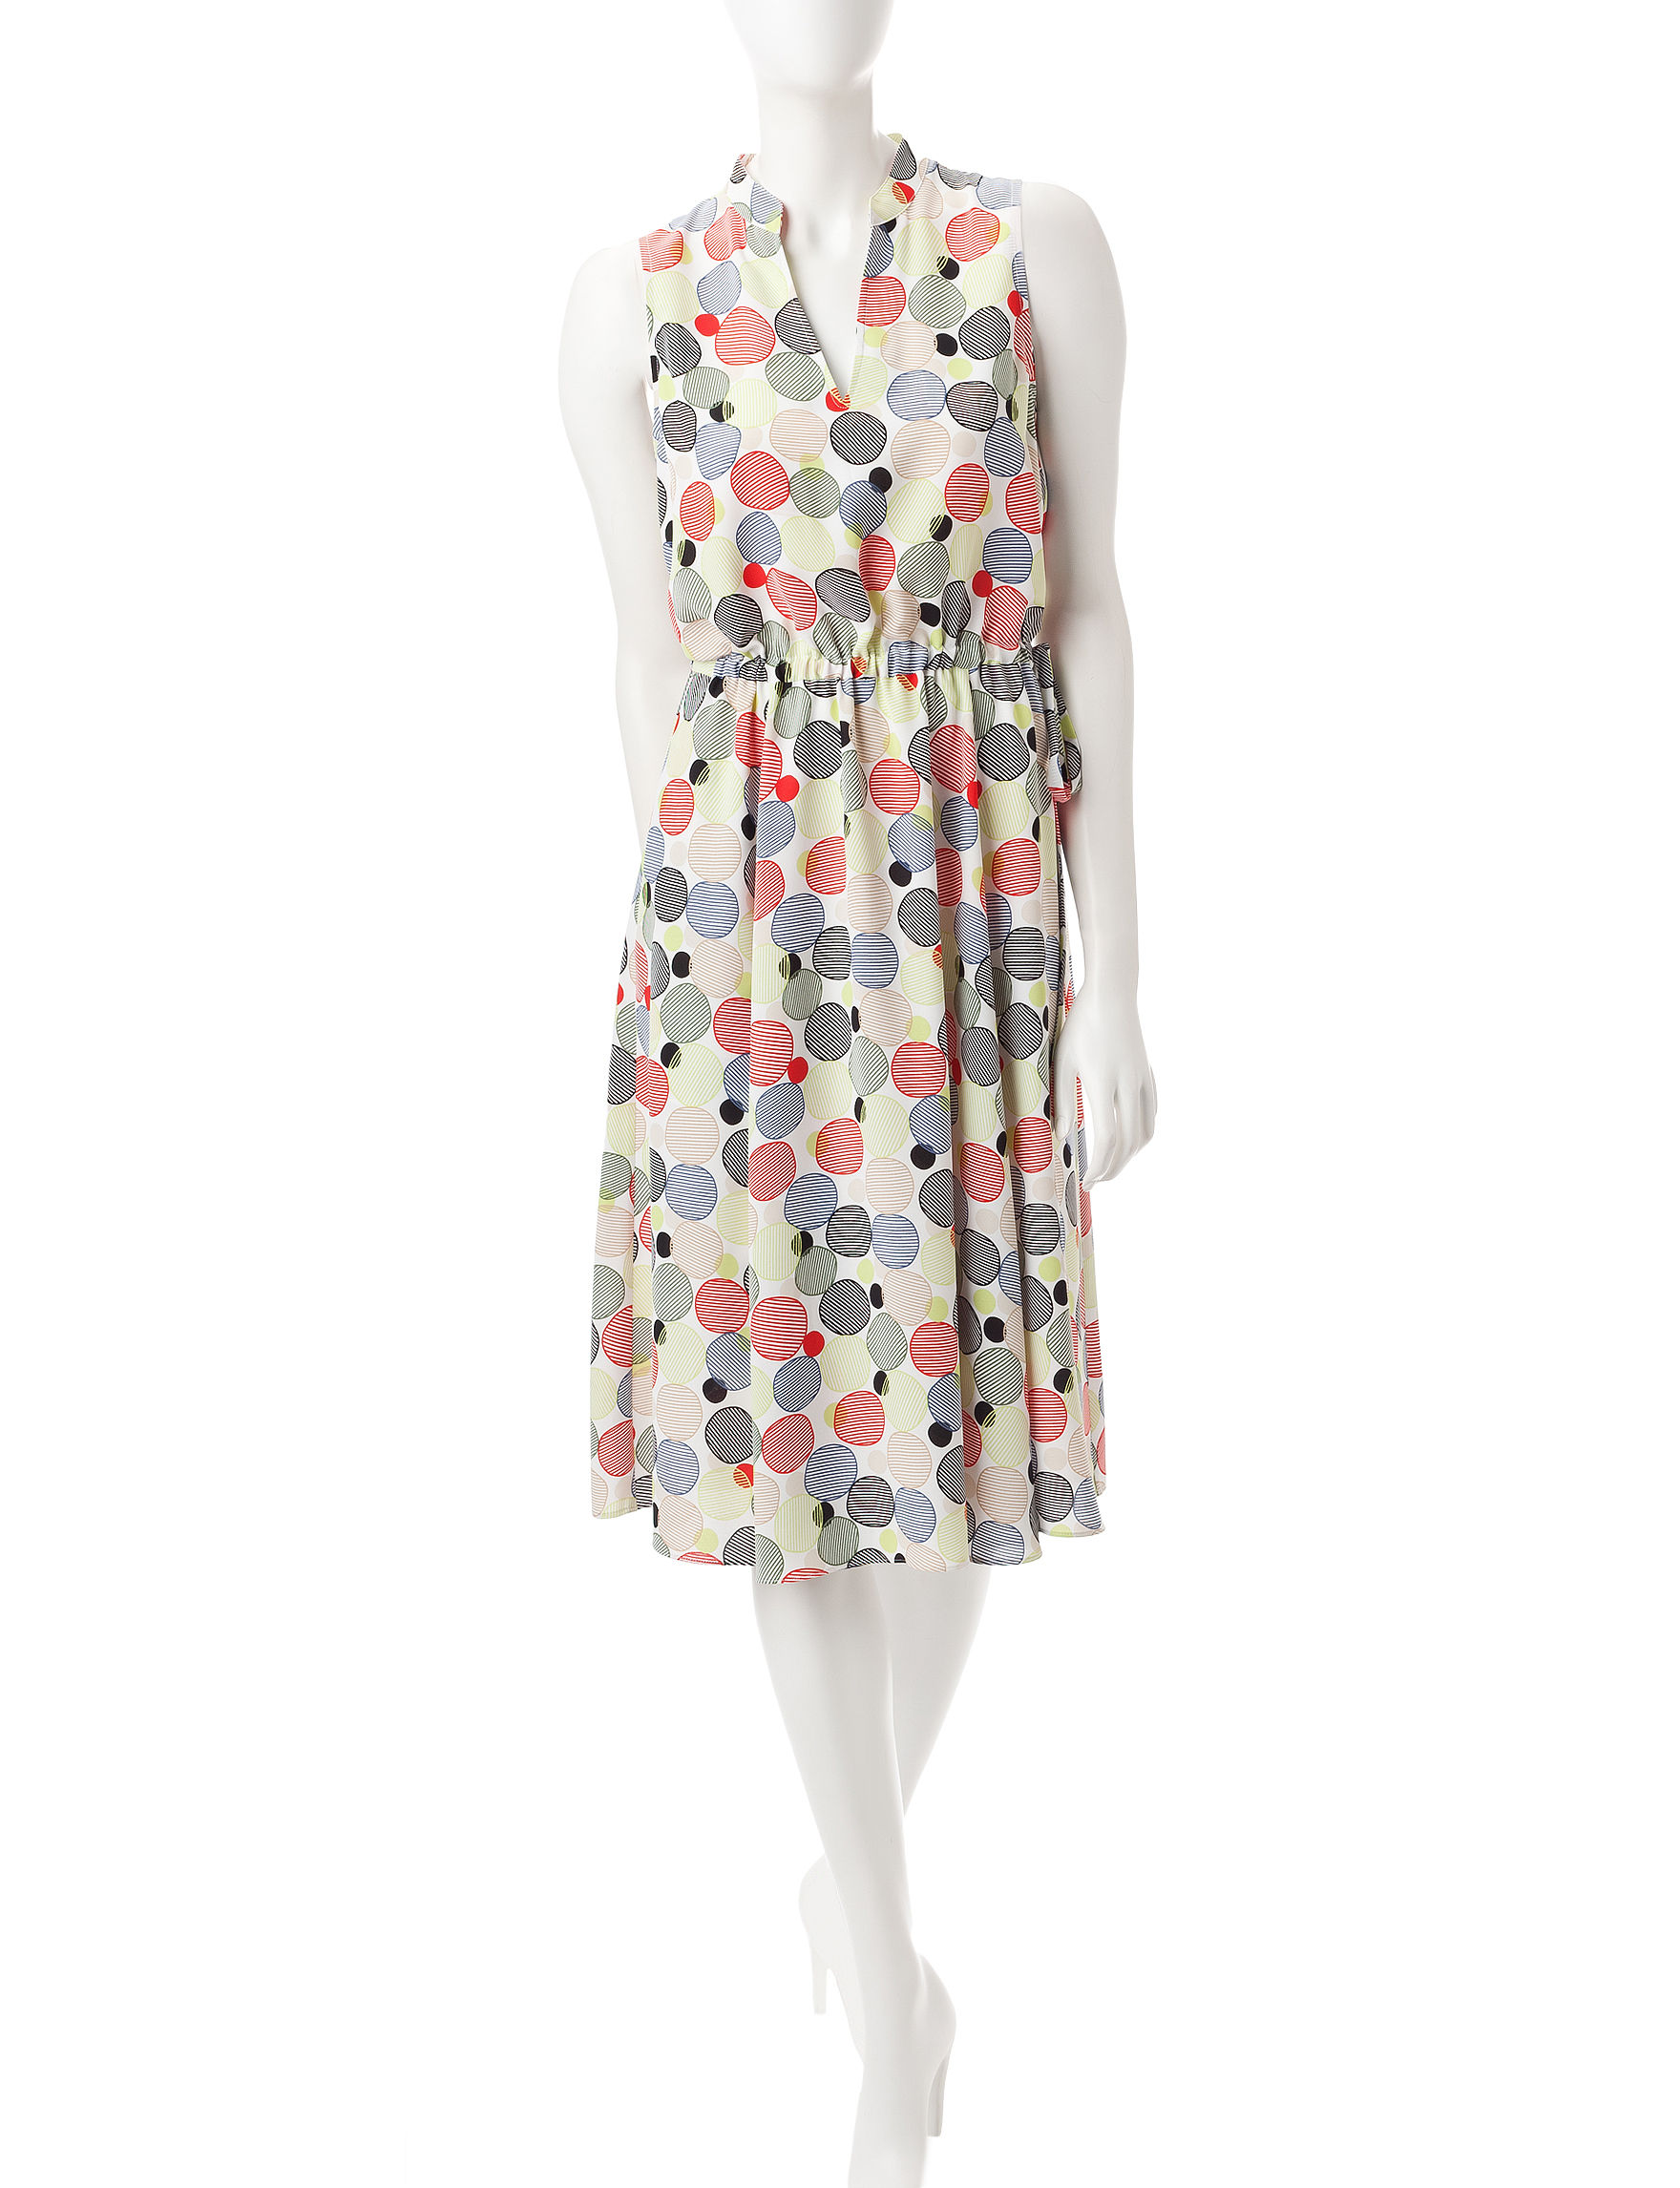 Anne Klein White / Green Everyday & Casual Fit & Flare Dresses